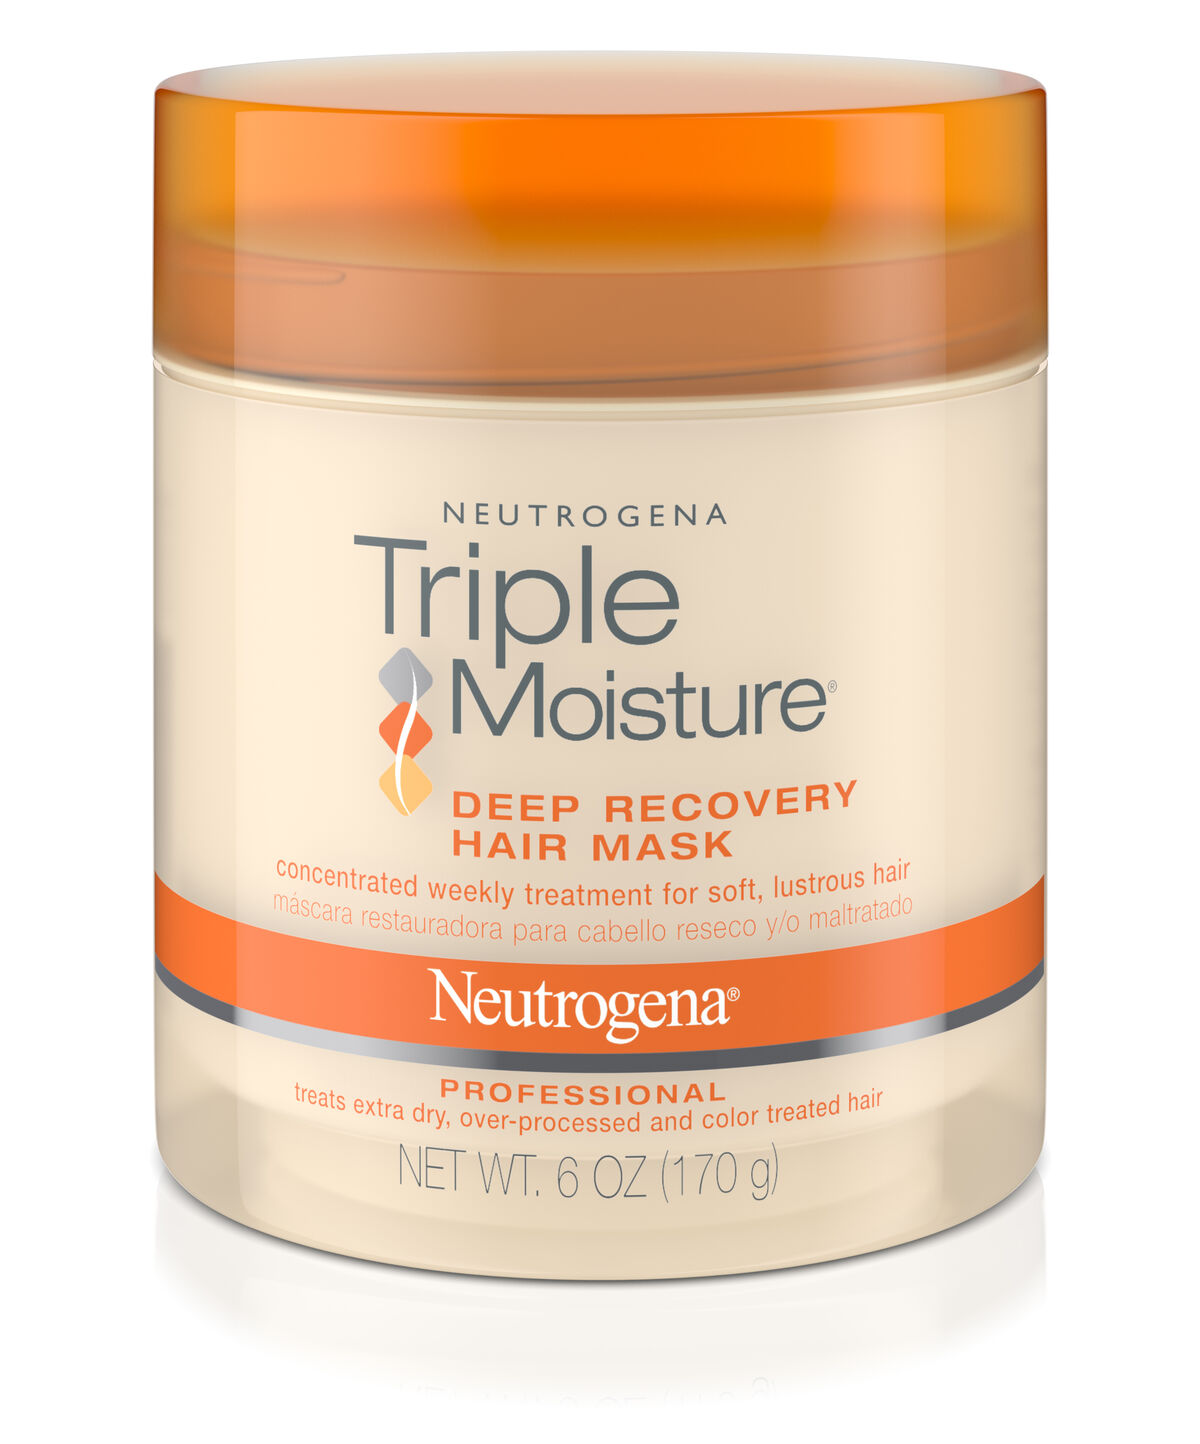 Neutrogena Triple Moisture Deep Recovery Hair Mask Neutrogena